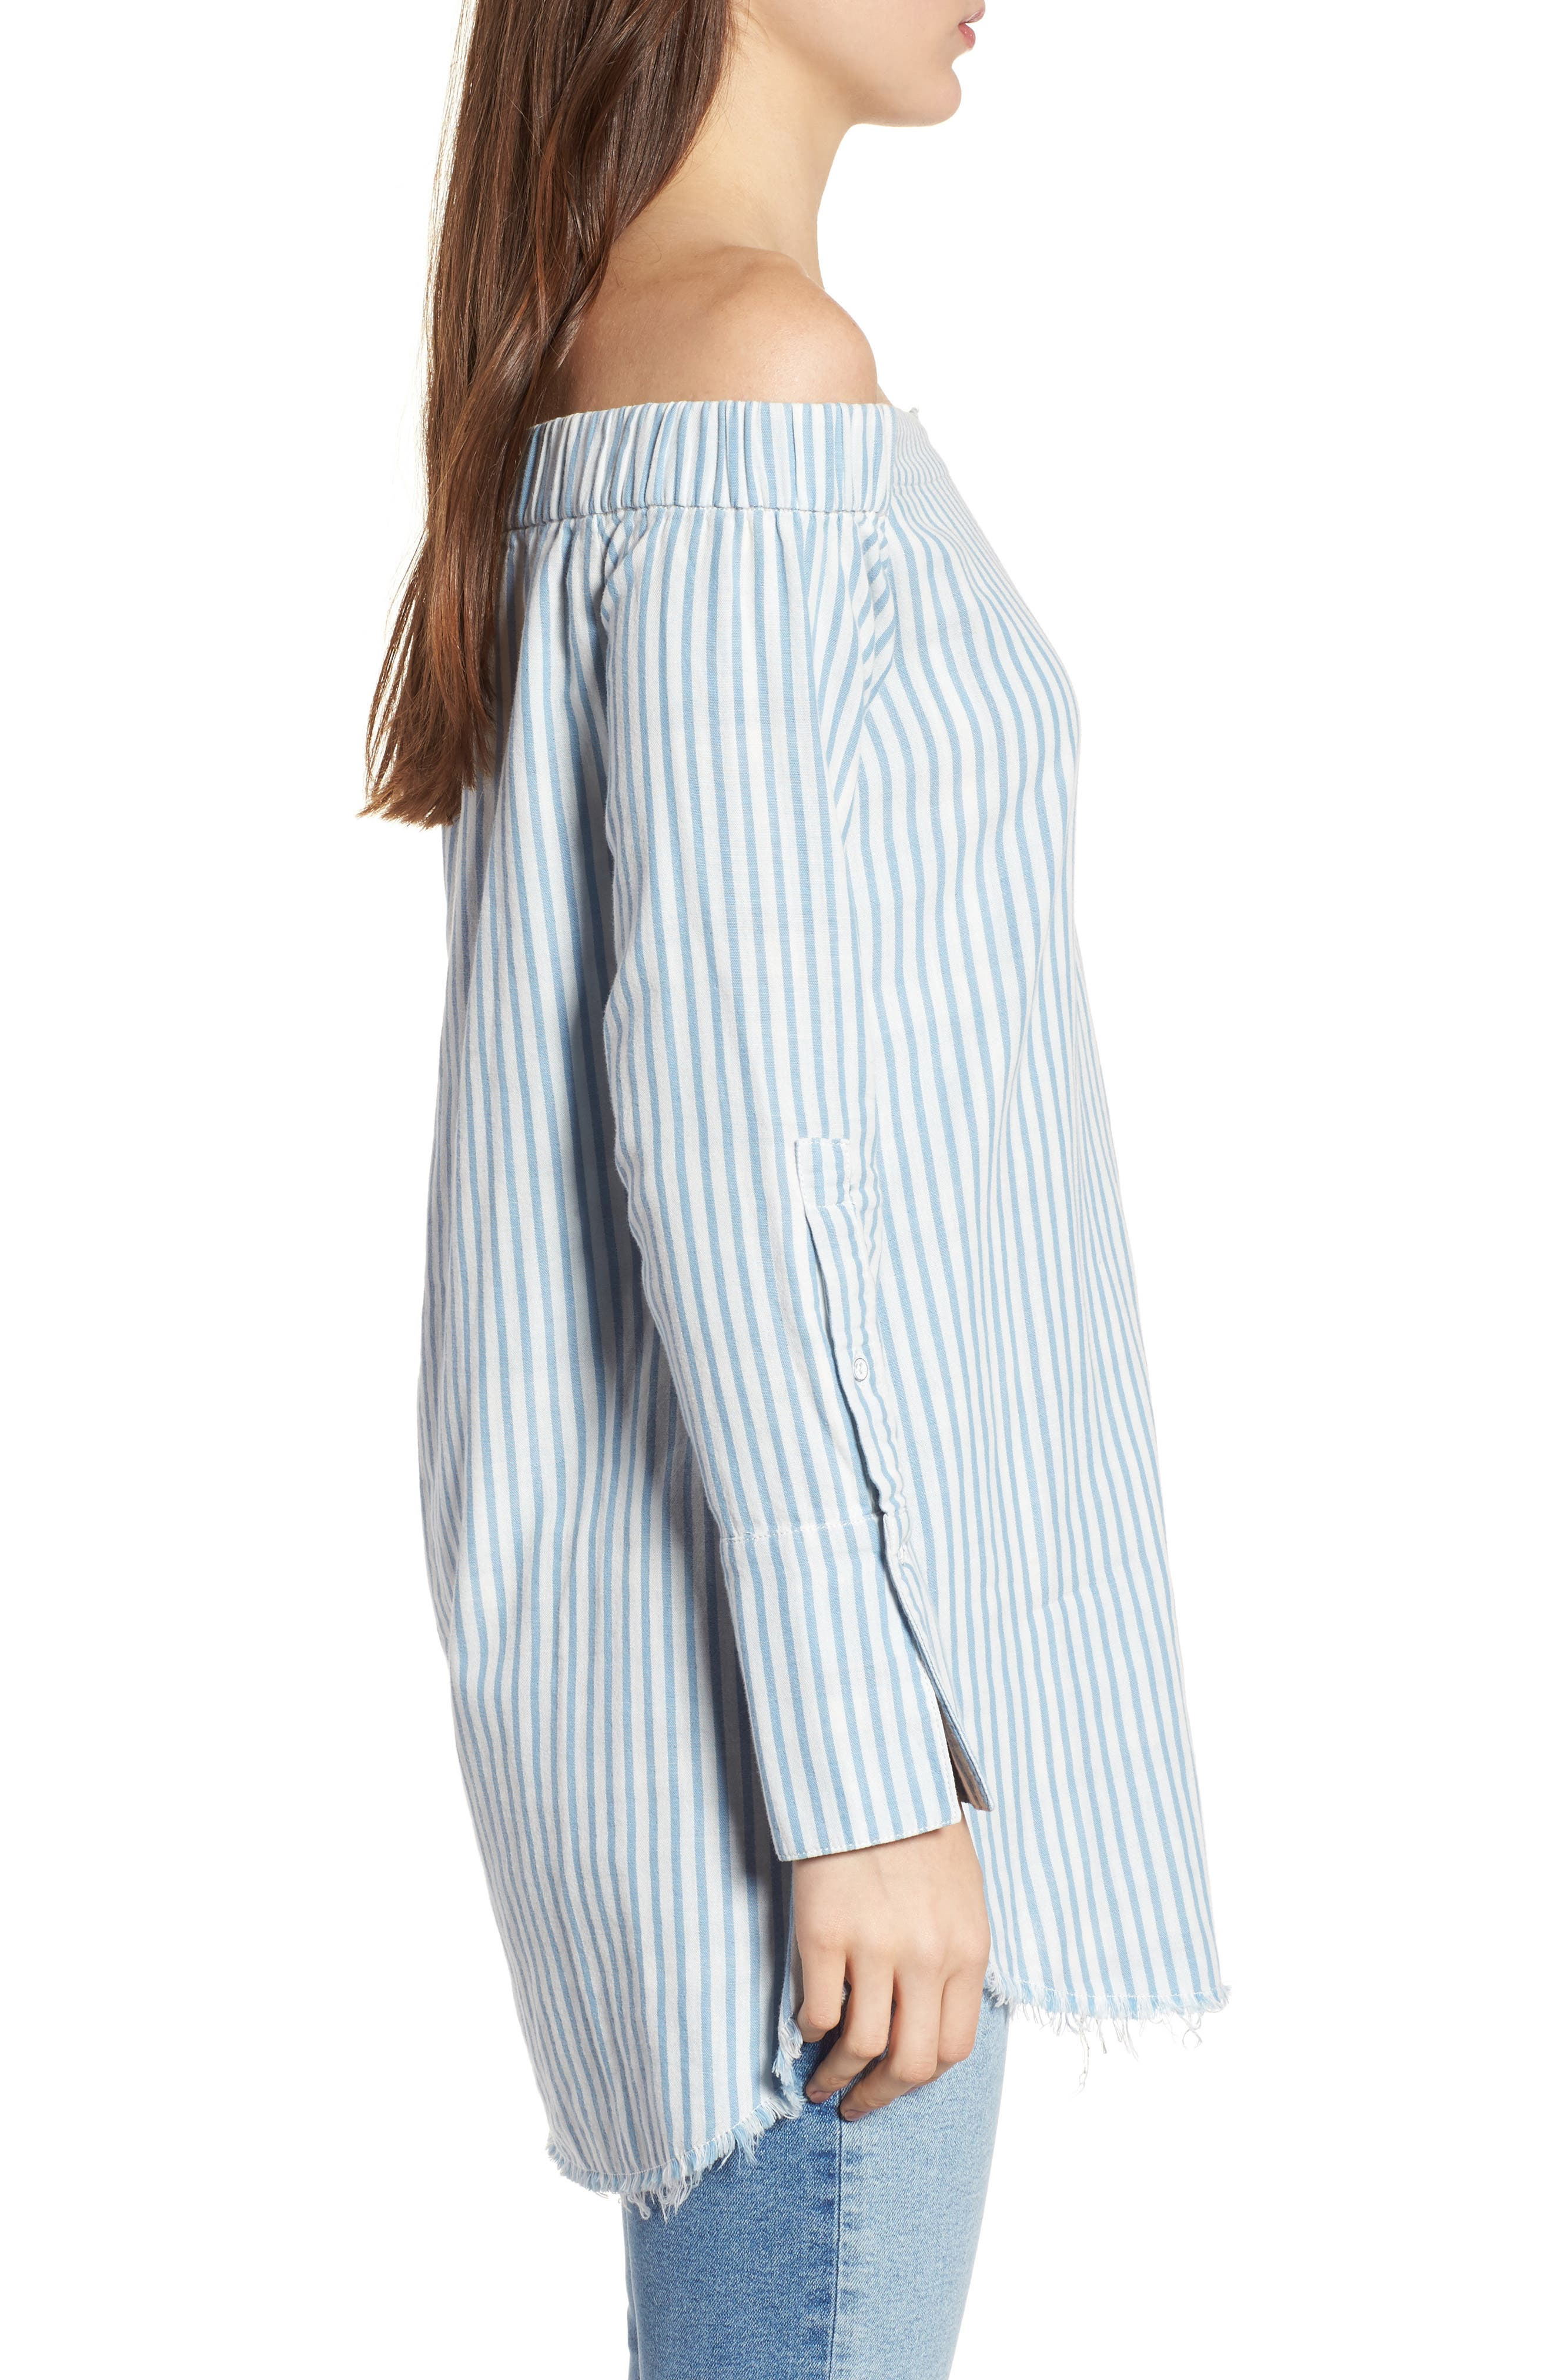 Adelphi & Willoughby Off the Shoulder Shirt,                             Alternate thumbnail 3, color,                             430